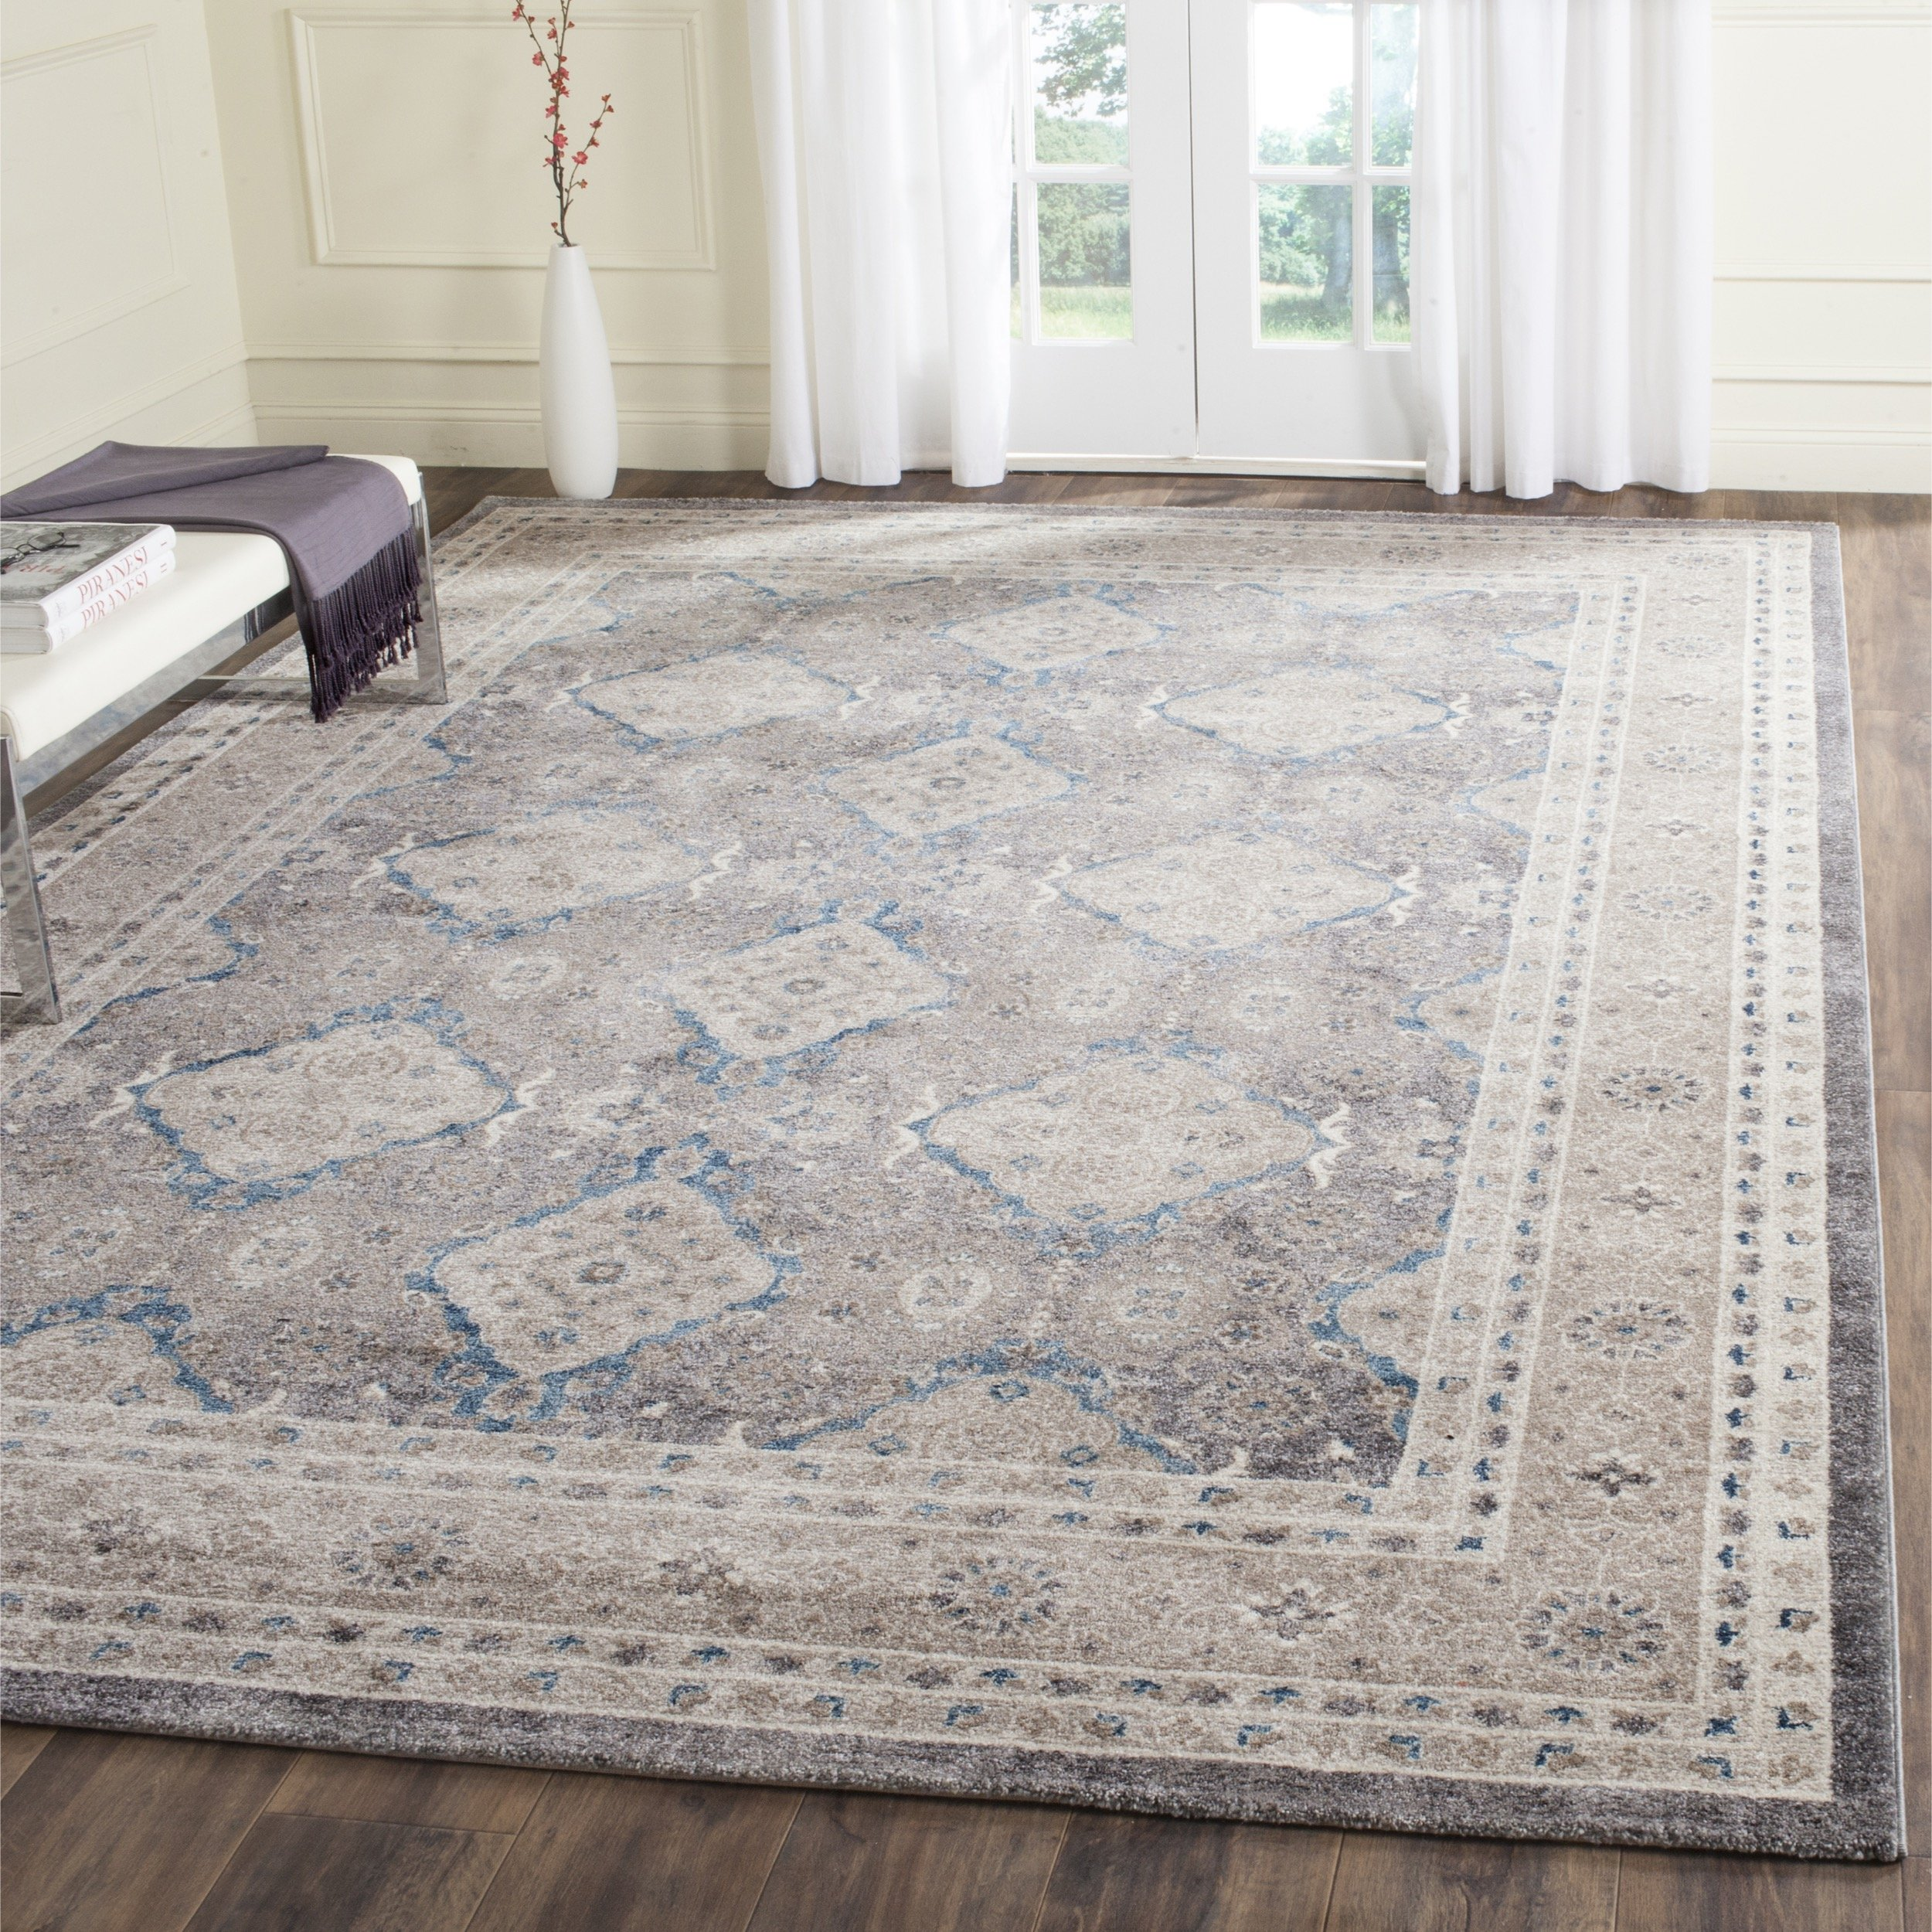 Safavieh Sofia Collection SOF366B Vintage Light Grey and Beige Distressed Area Rug (6'7'' x 9'2'') by Safavieh